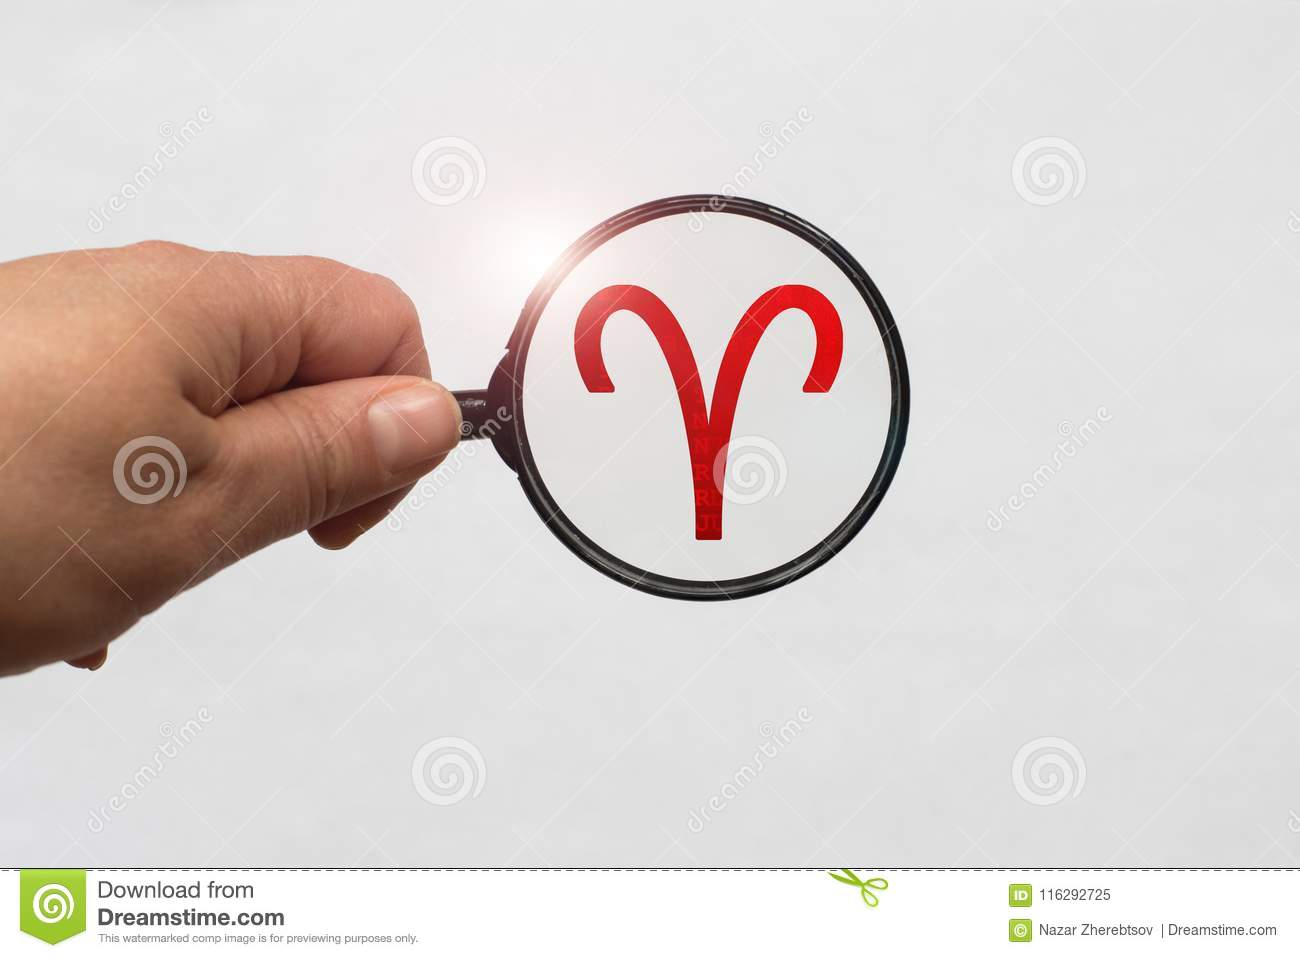 Illustration of a magnifying glass focusing on the Red Aries Zodiac Sign